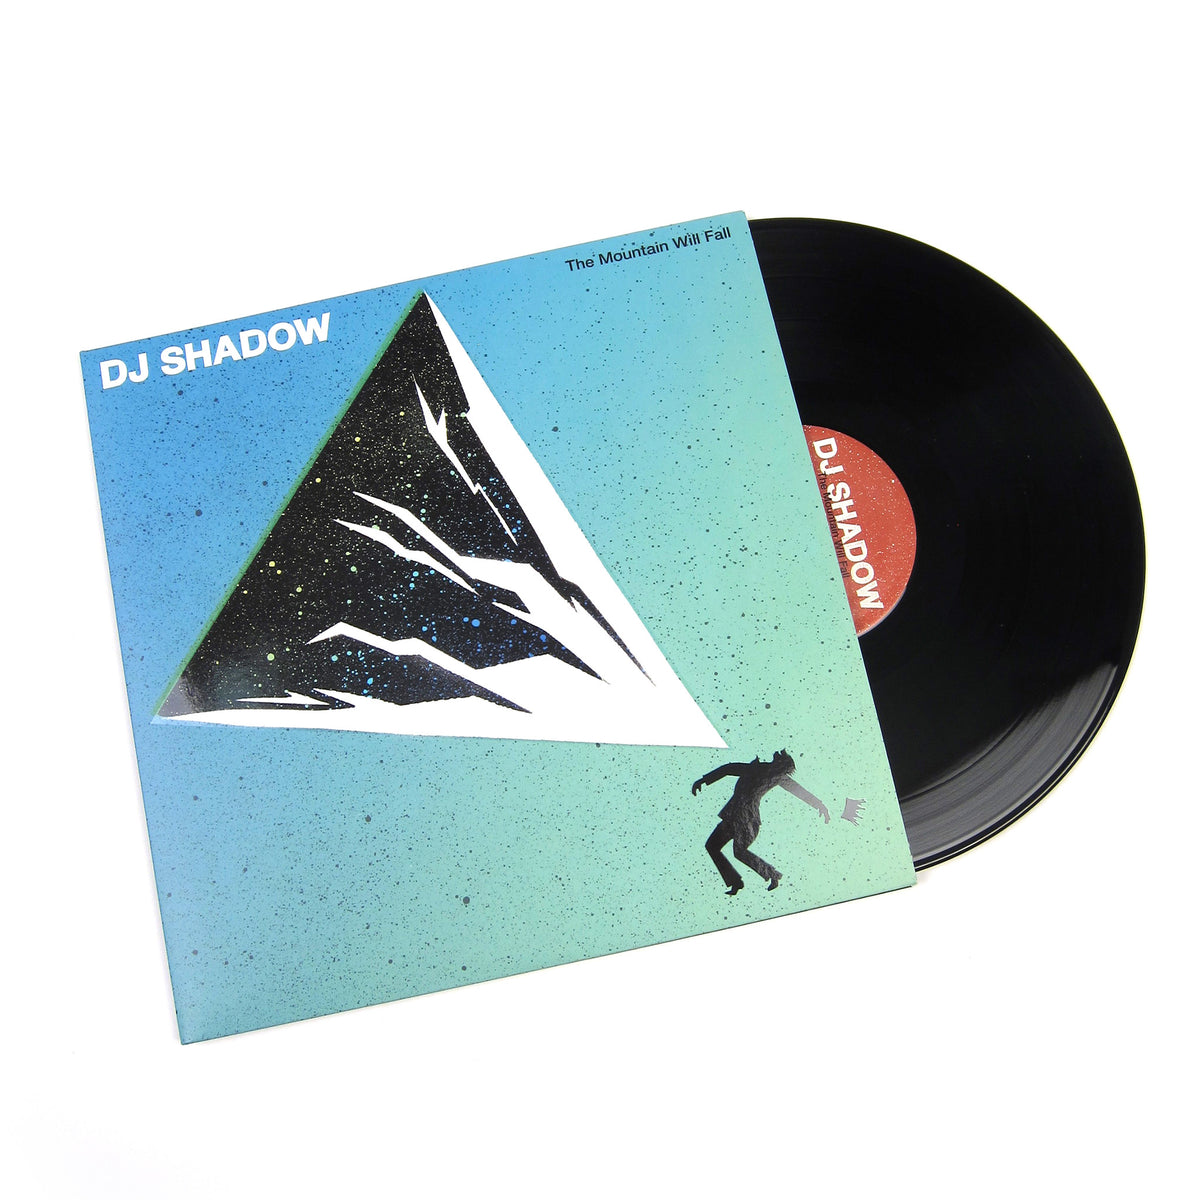 DJ Shadow: The Mountain Will Fall Vinyl 2LP